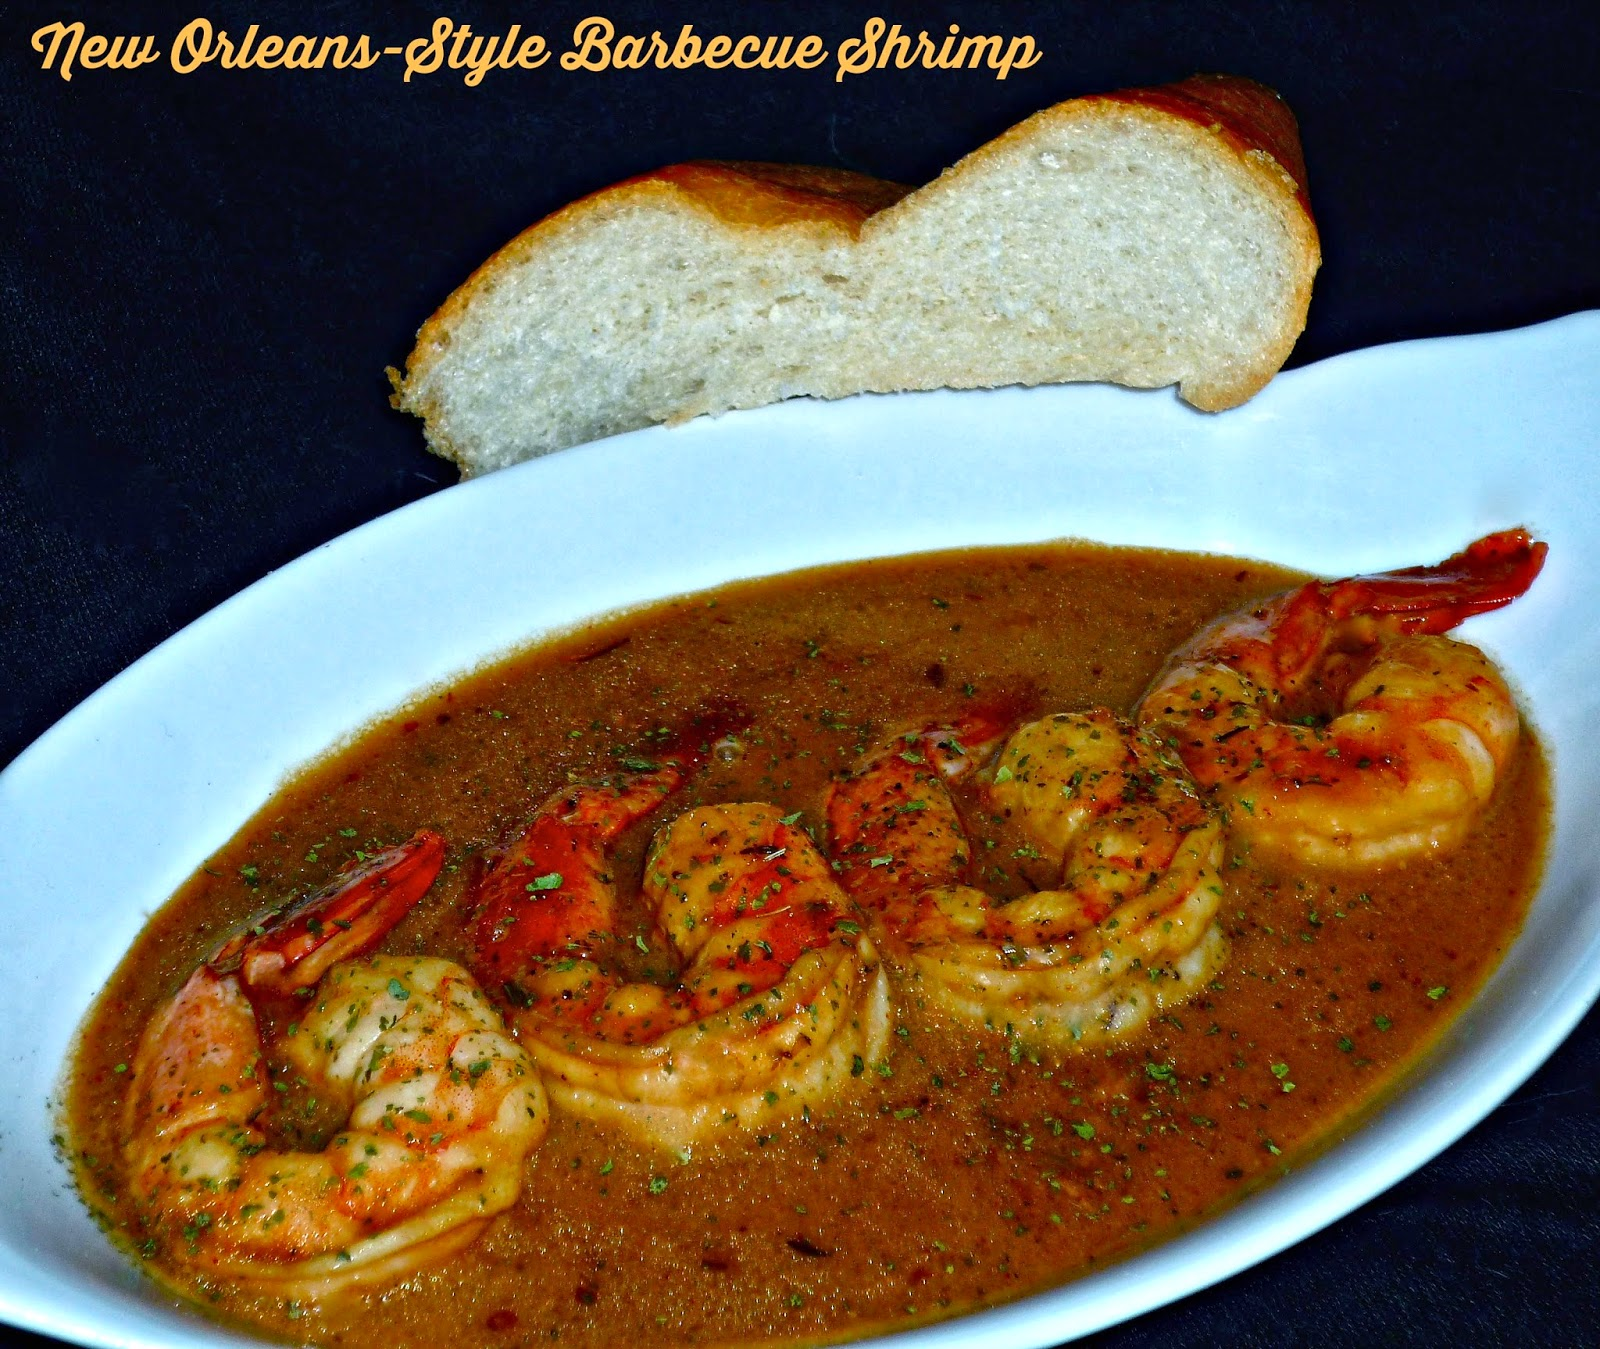 ... Fine Coastal Cuisine...Featuring New Orleans-Style Barbecue Shrimp